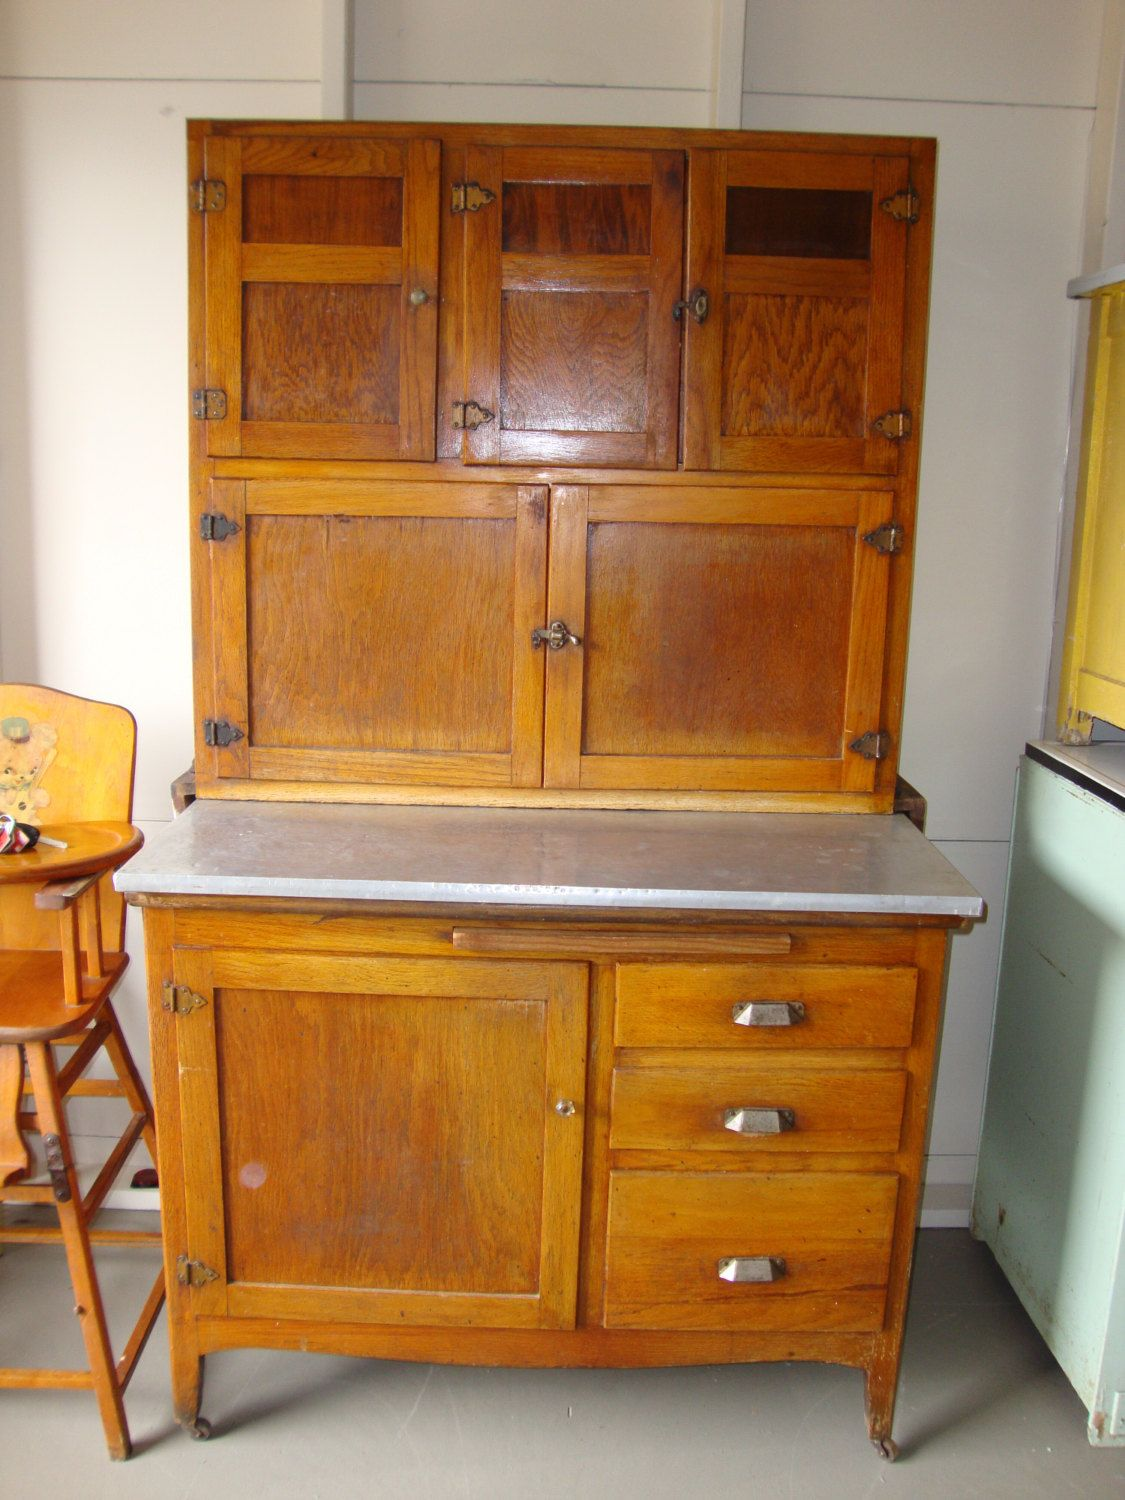 1930 S Wooden Hoosier Type Kitchen Cabinet Zinc Top